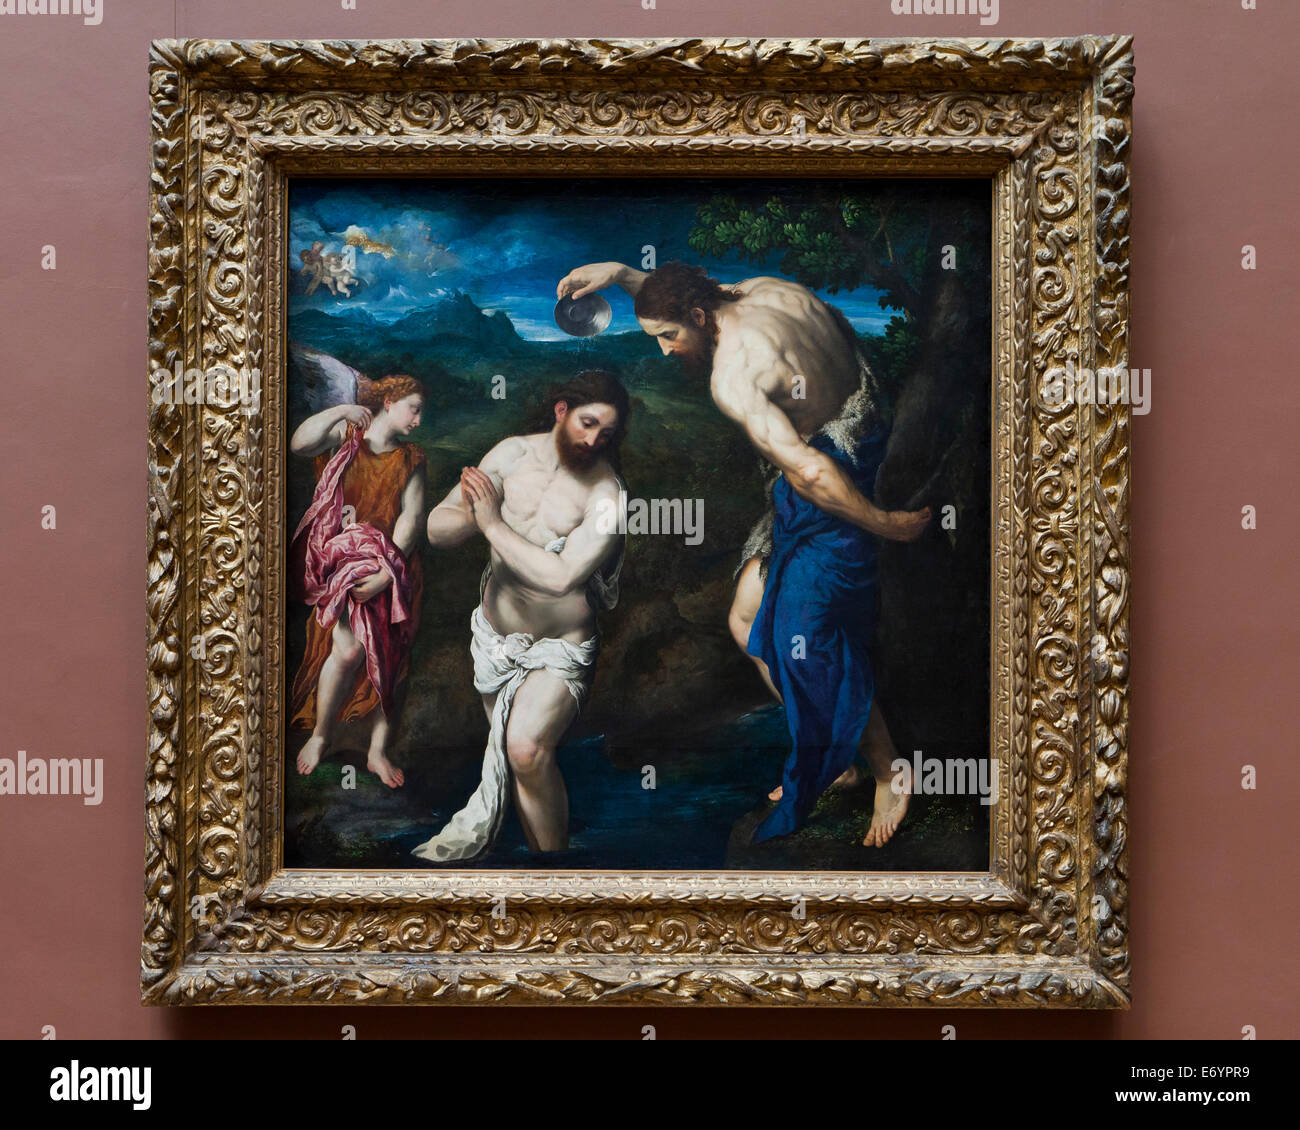 'The Baptism of Christ' by Paris Bordone, 1535 - Smithsonian National Gallery of Art, Washington, DC USA - Stock Image